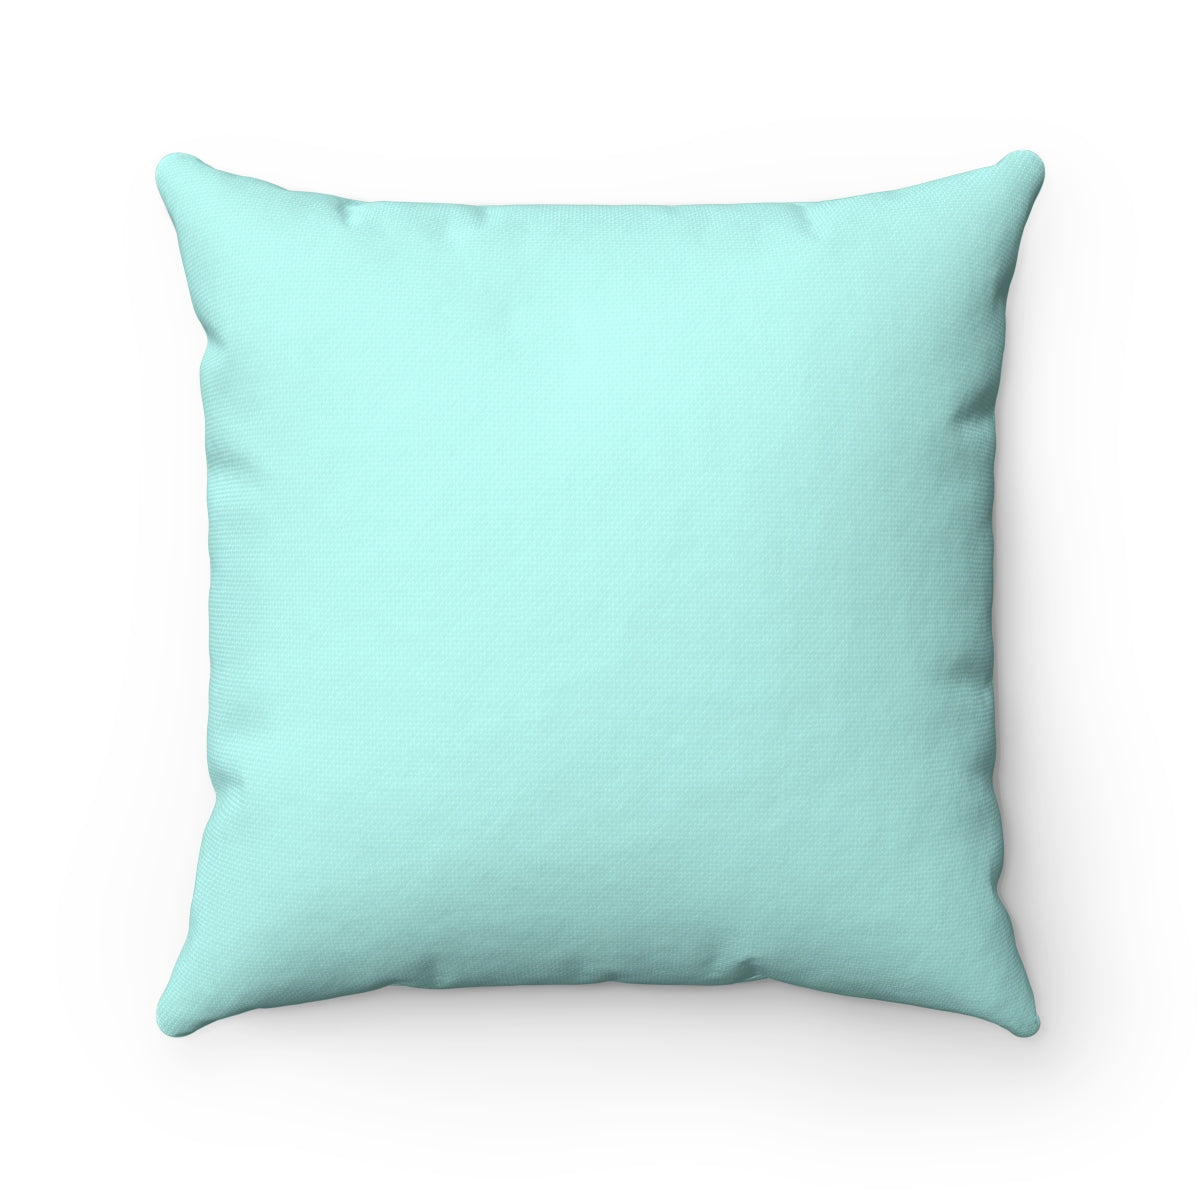 Ovarian Cancer Awareness Light Teal Square Pillow 20 X 20 Faith Hope Love Boutique